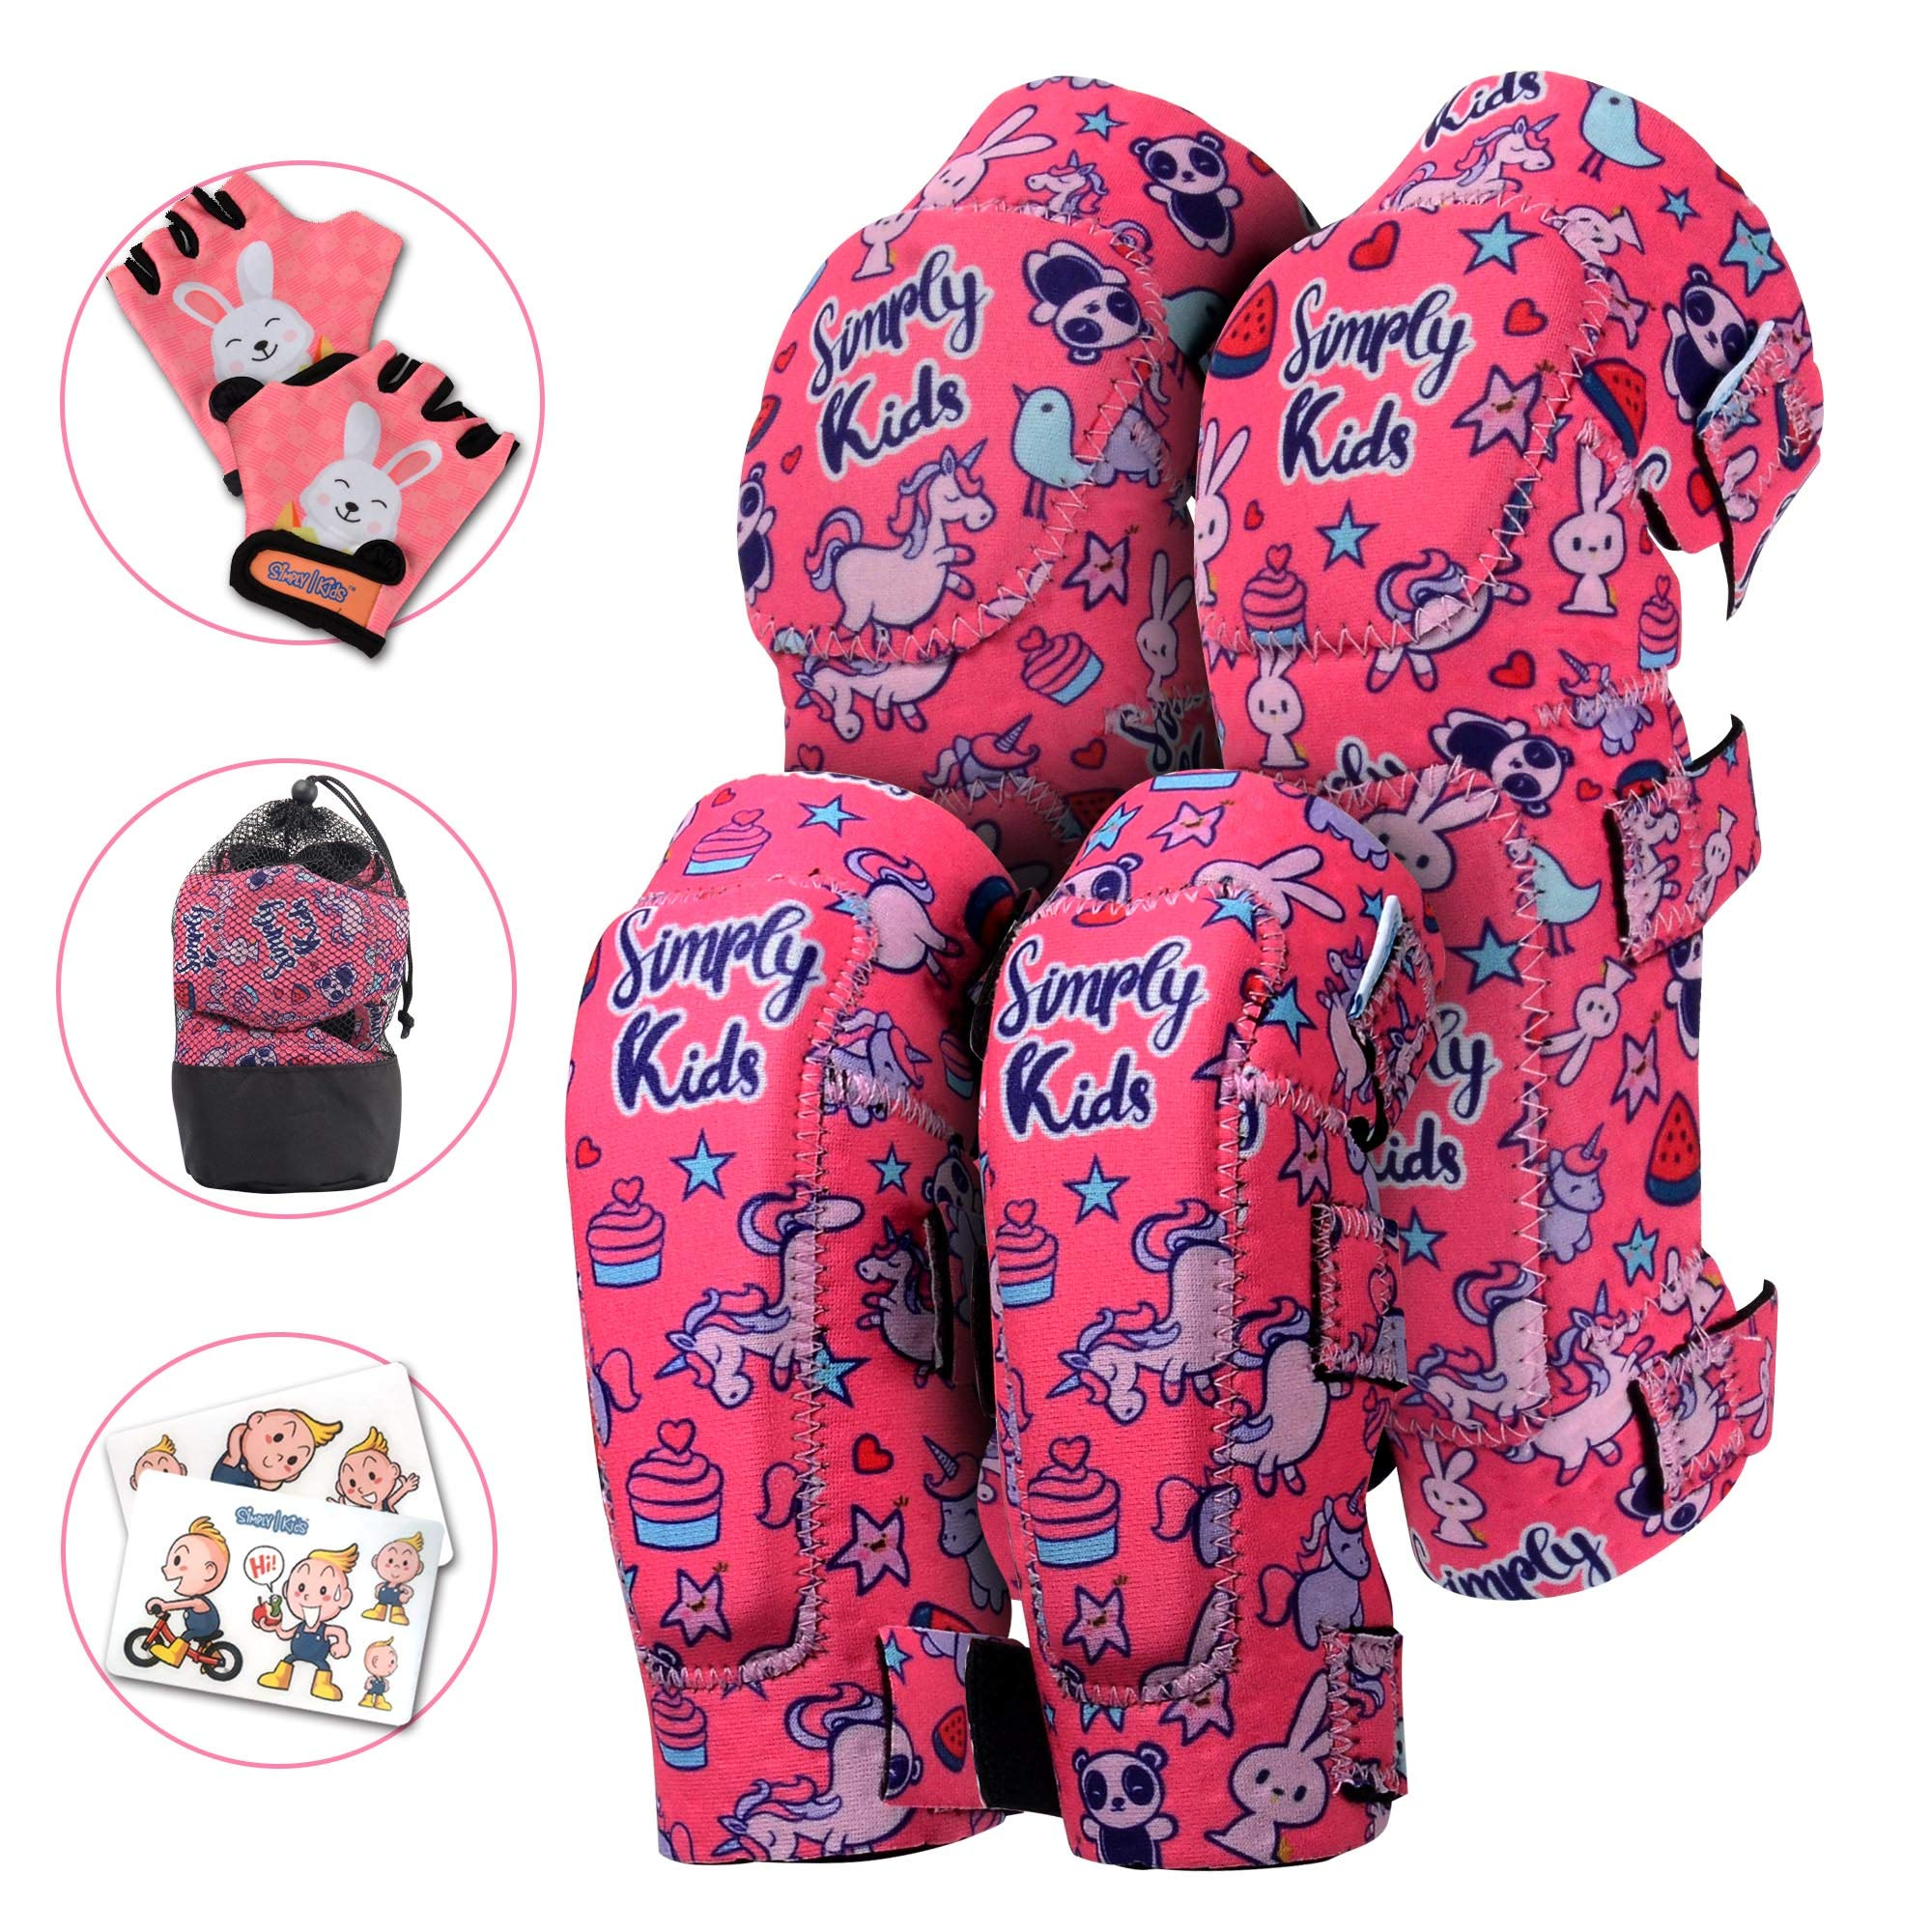 Innovative Soft Kids Knee and Elbow Pads with Bike Gloves | Toddler Protective Gear Set w/Mesh Bag | Comfortable& Flexible | Skateboard for Children Boys Girls ((2nd Gen) Unicorn, Small (2-4 Years))